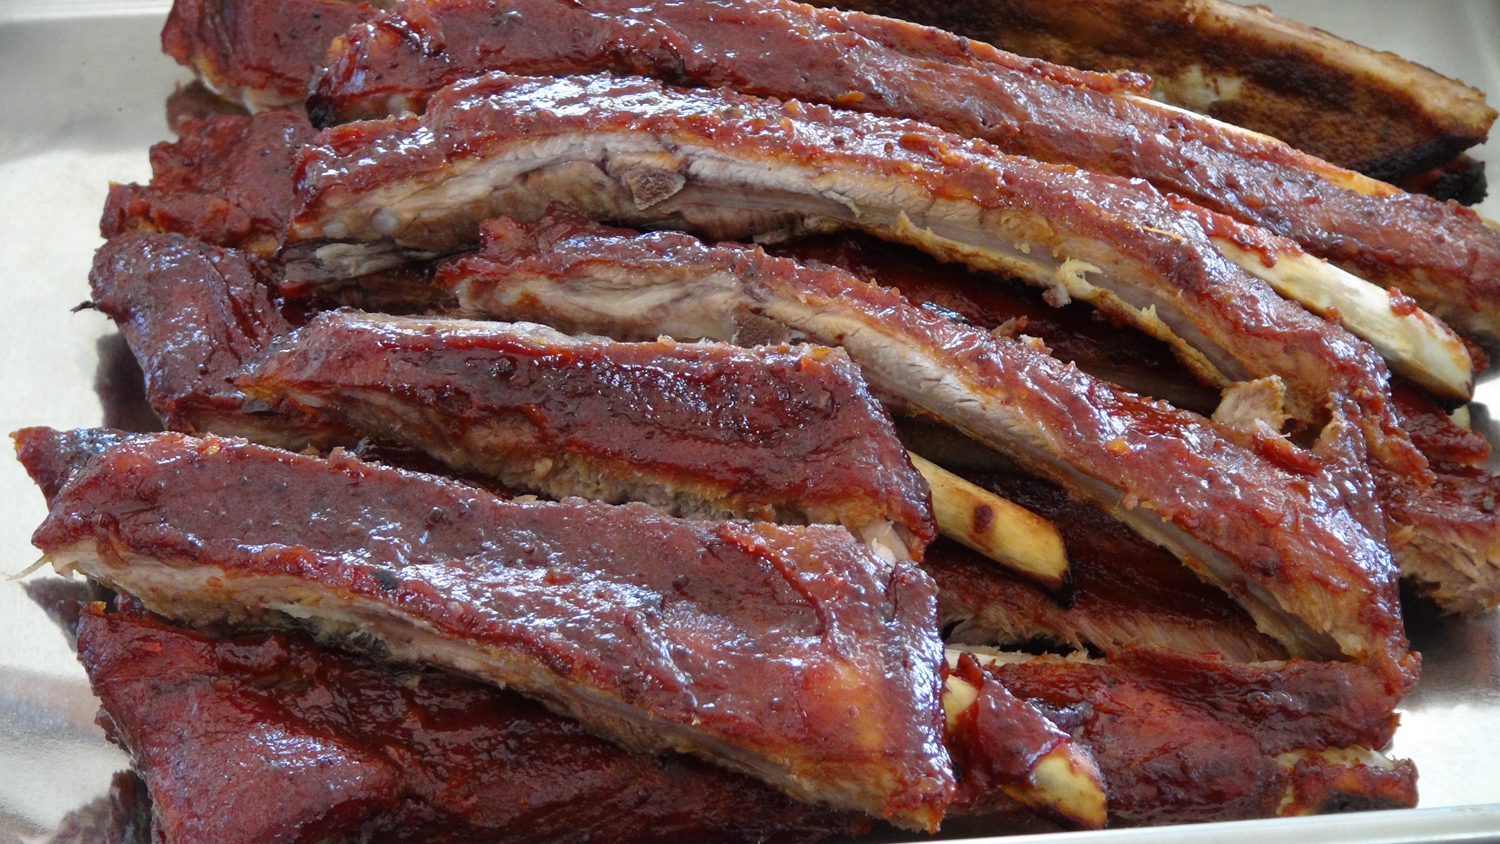 Ribs in the Oven with Barbecue Sauce - The Frugal Chef